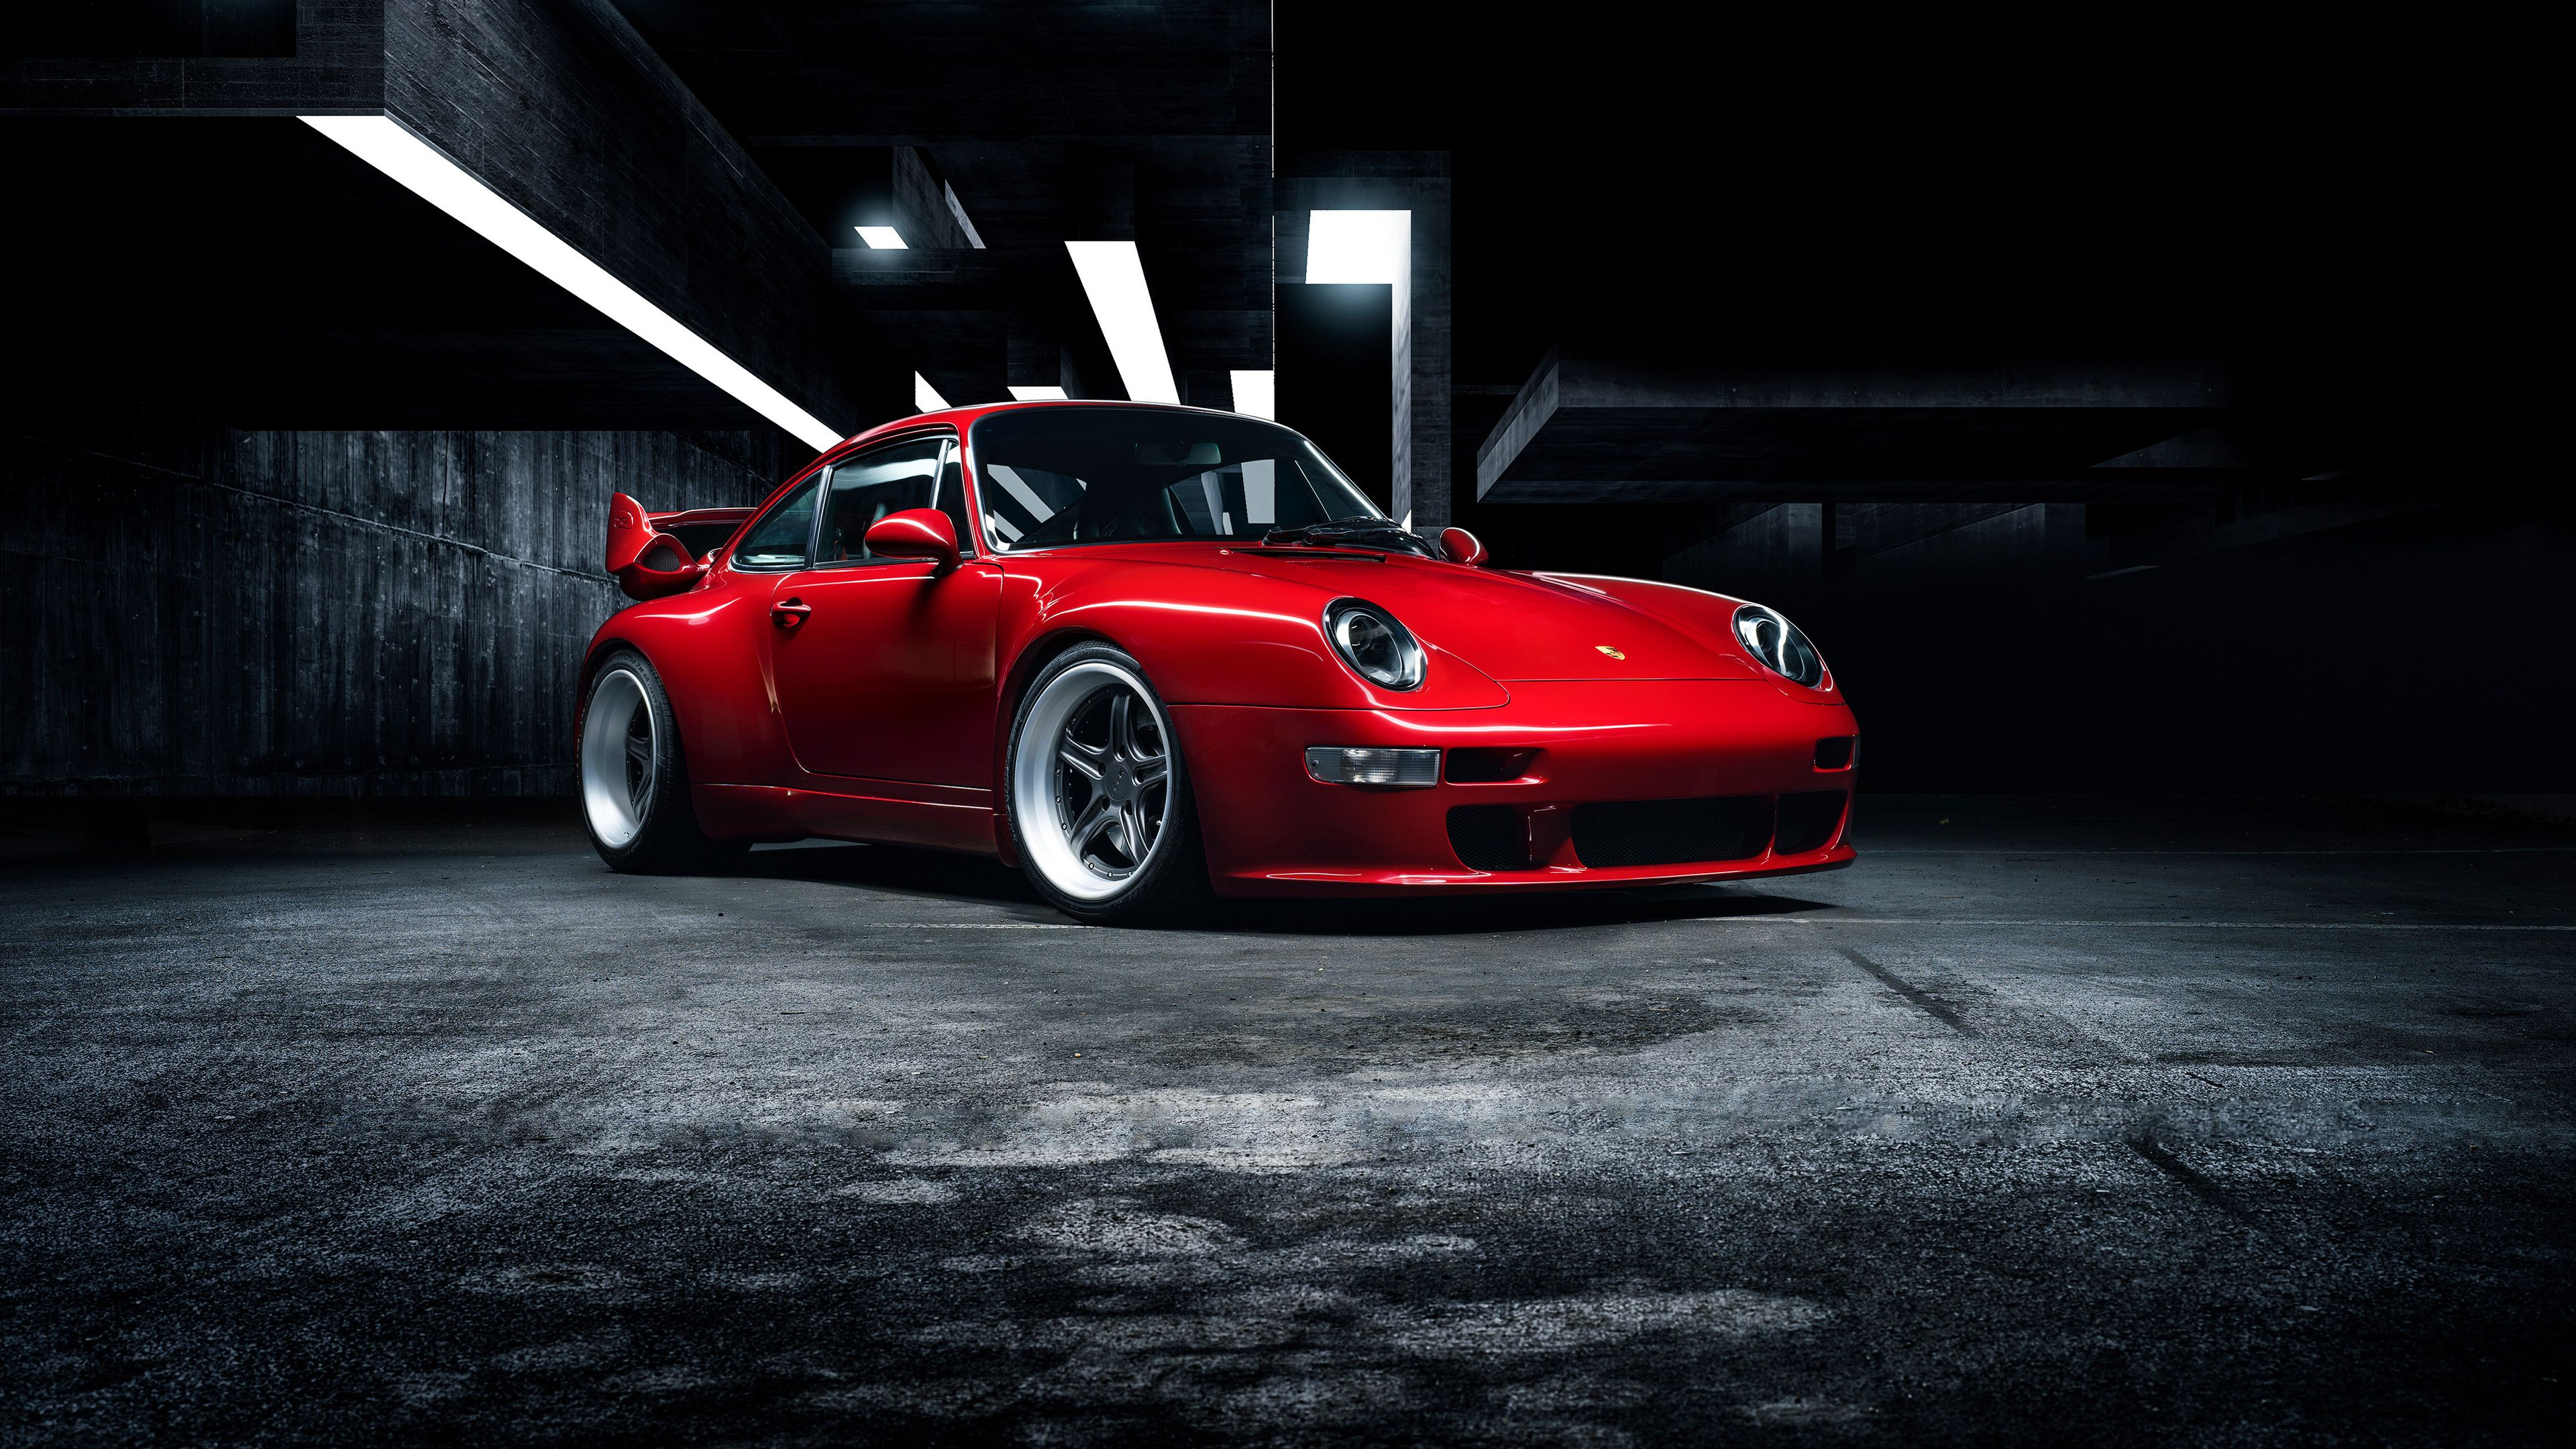 Porsche Gunther Werks 400r Porsche Wallpapers Hd Wallpapers Gunther Werks Wallpapers Cars Wallpapers 4k Wallpaper Porsche Sports Car Porsche 993 Sports Car